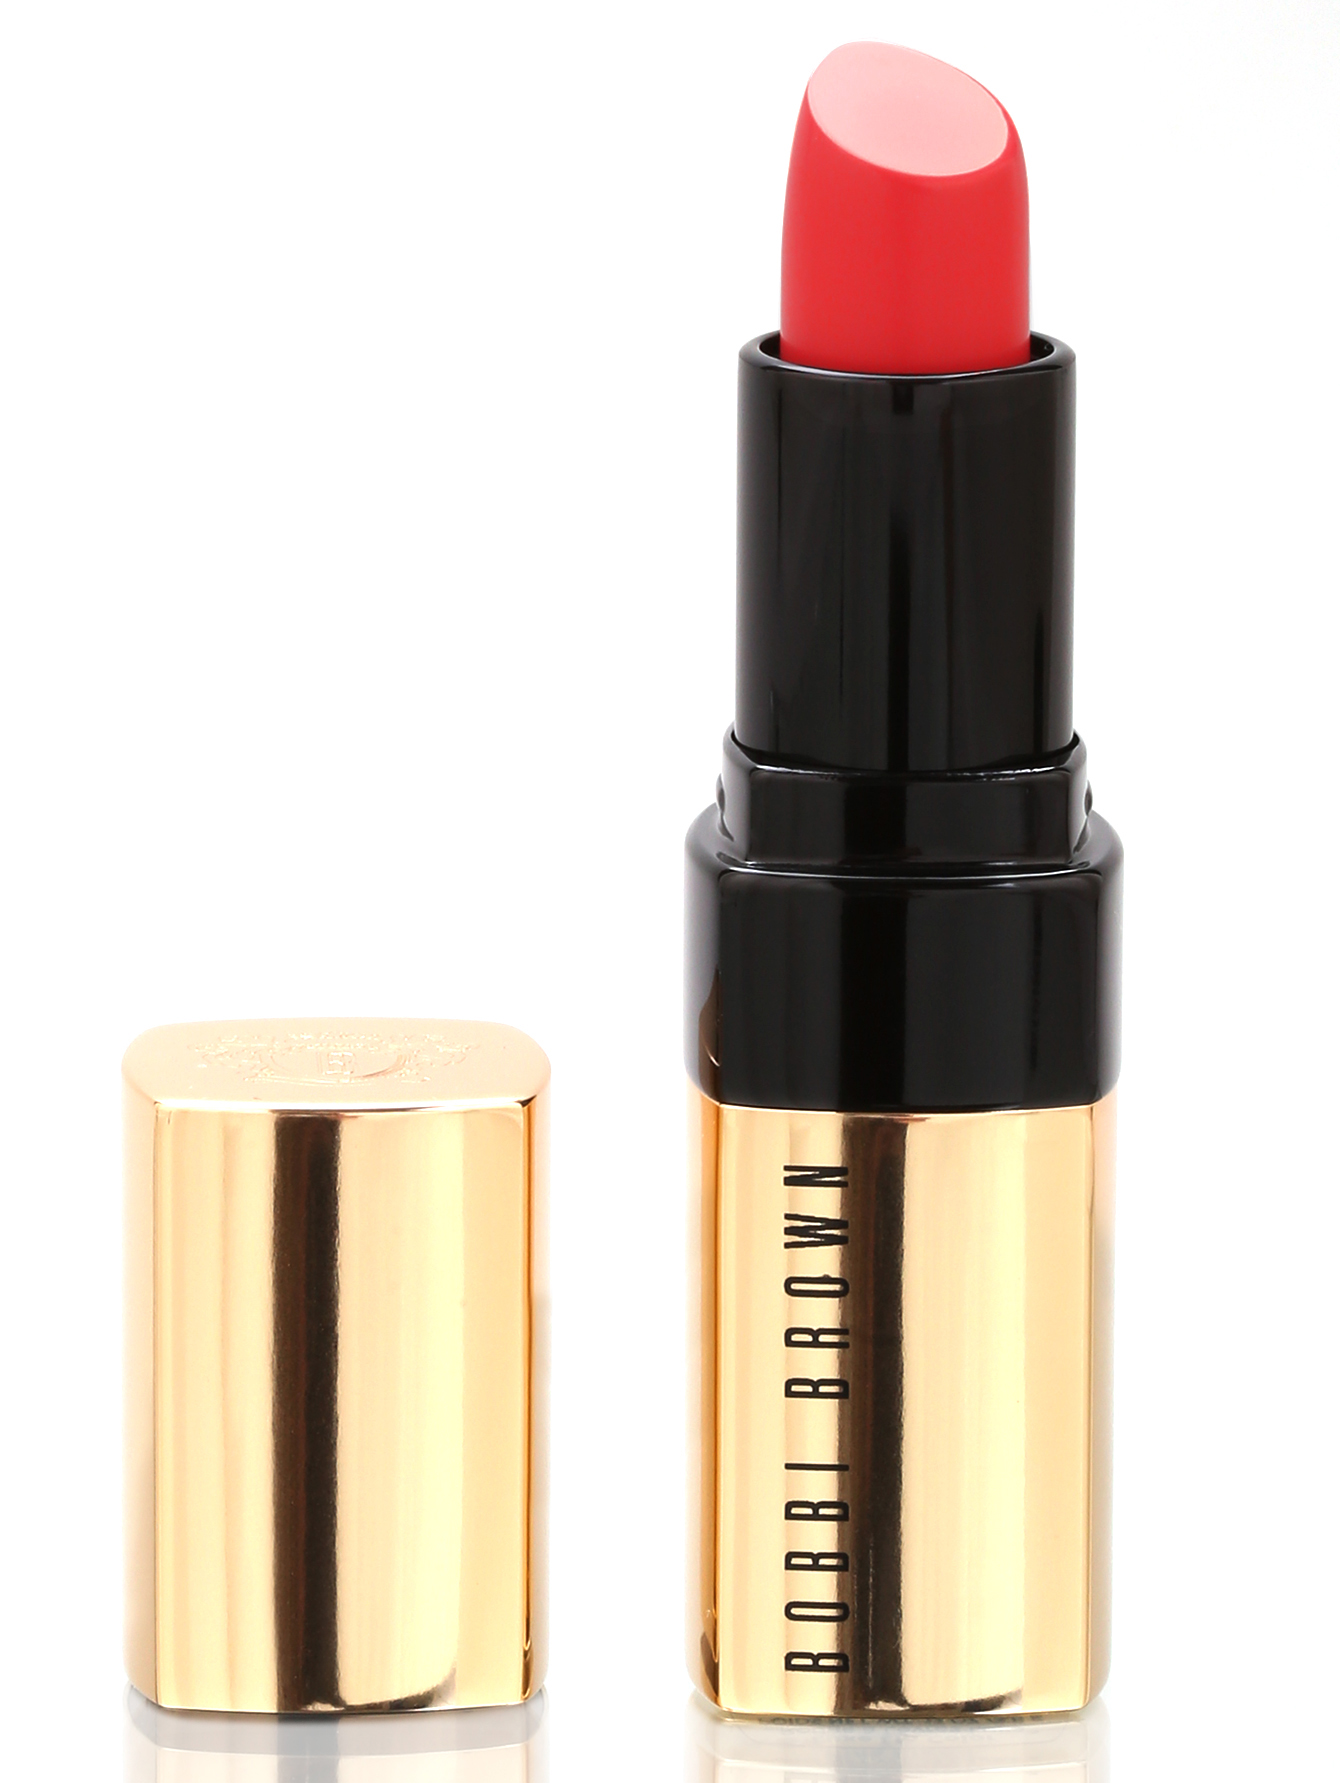 Помада - Sunset Orange, Luxe Lip Color - Общий вид